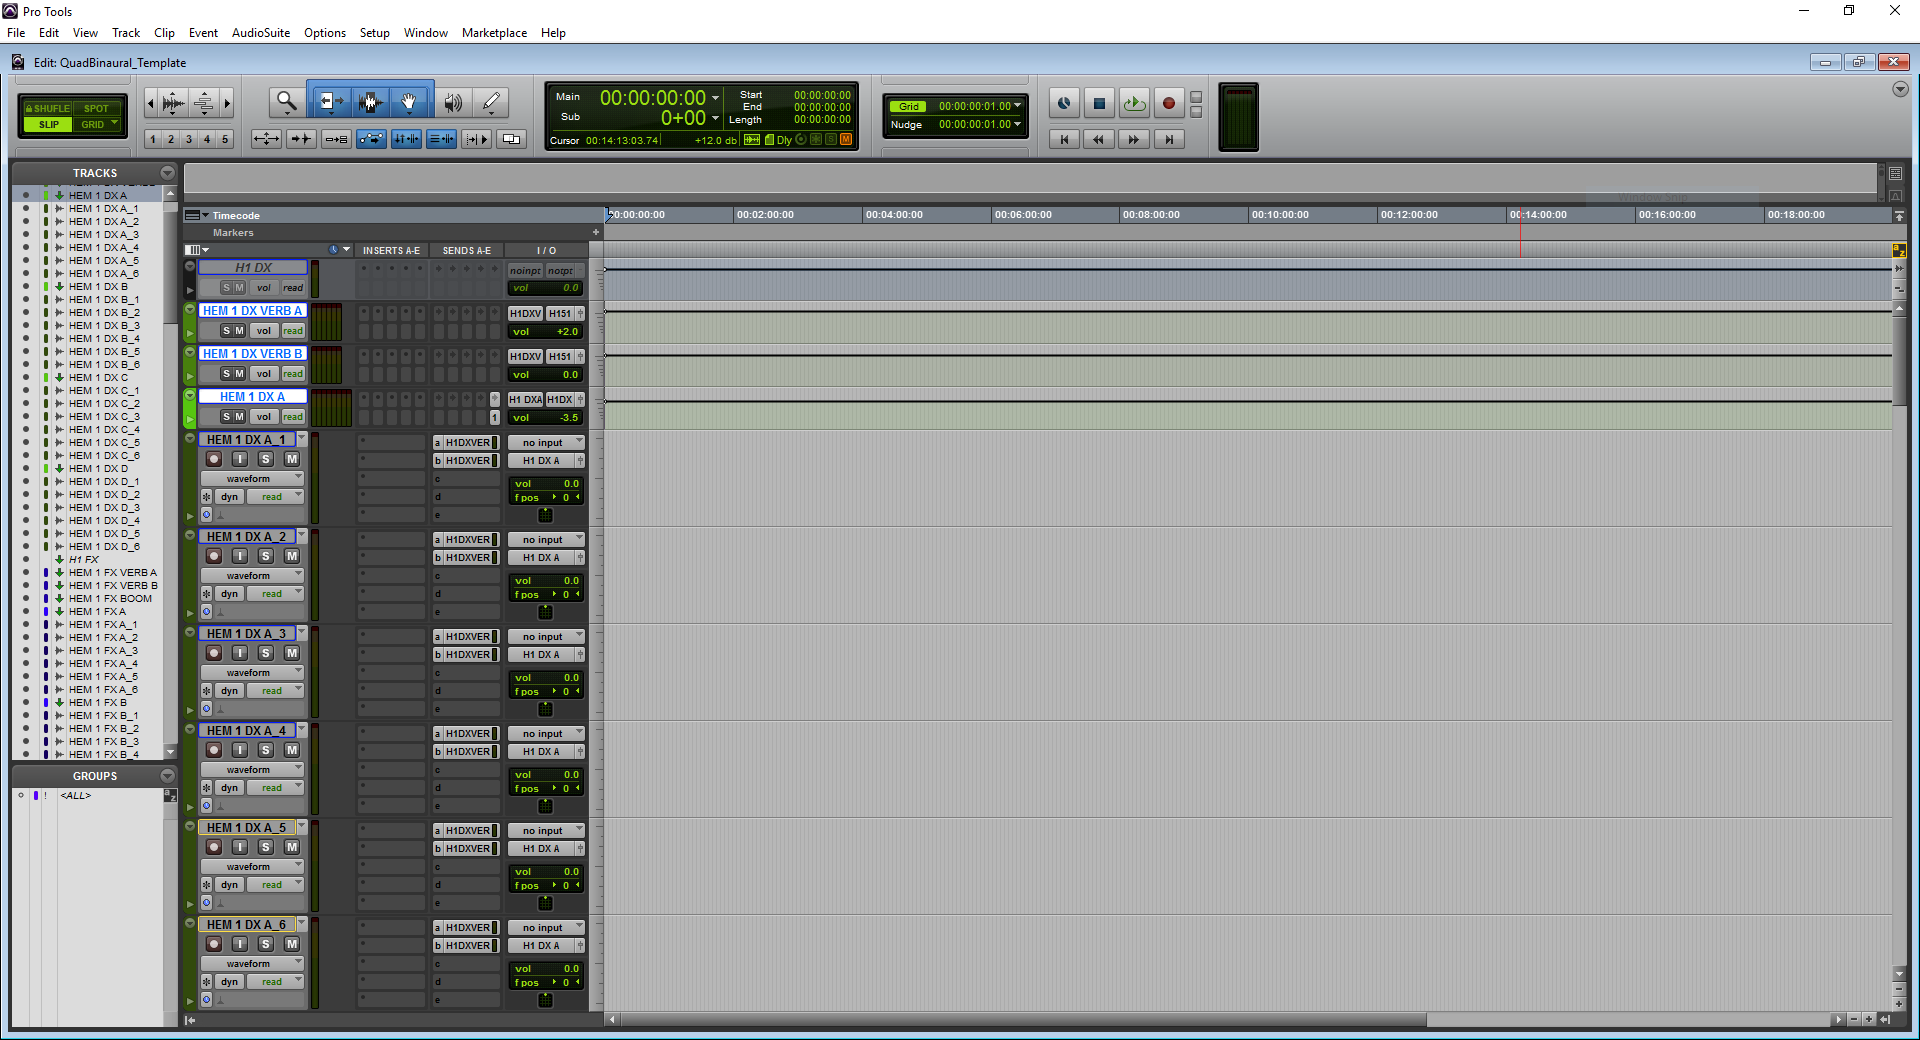 A screenshot of Pro Tools showing the dialog predub